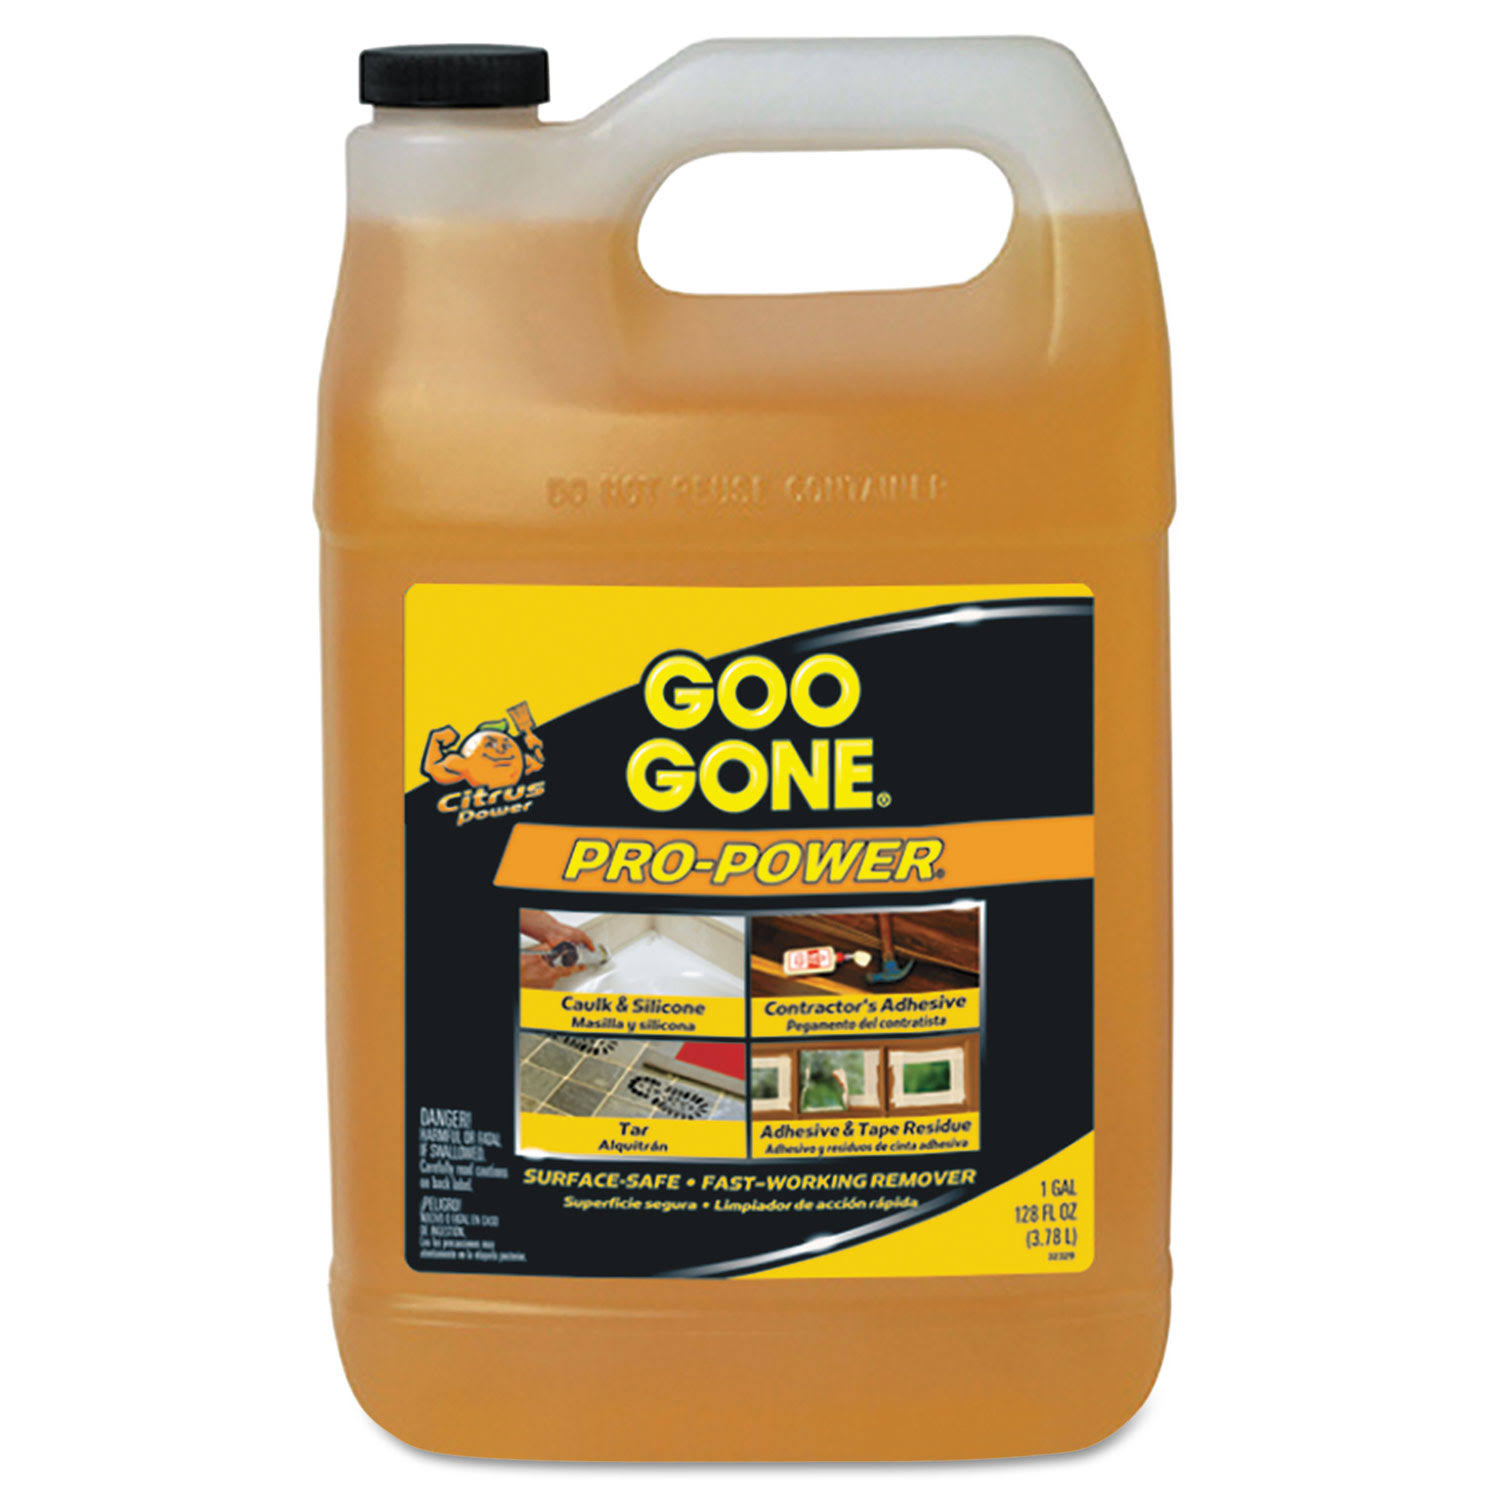 Goo Gone Pro-power Cleaner - Citrus Scent, 1gal